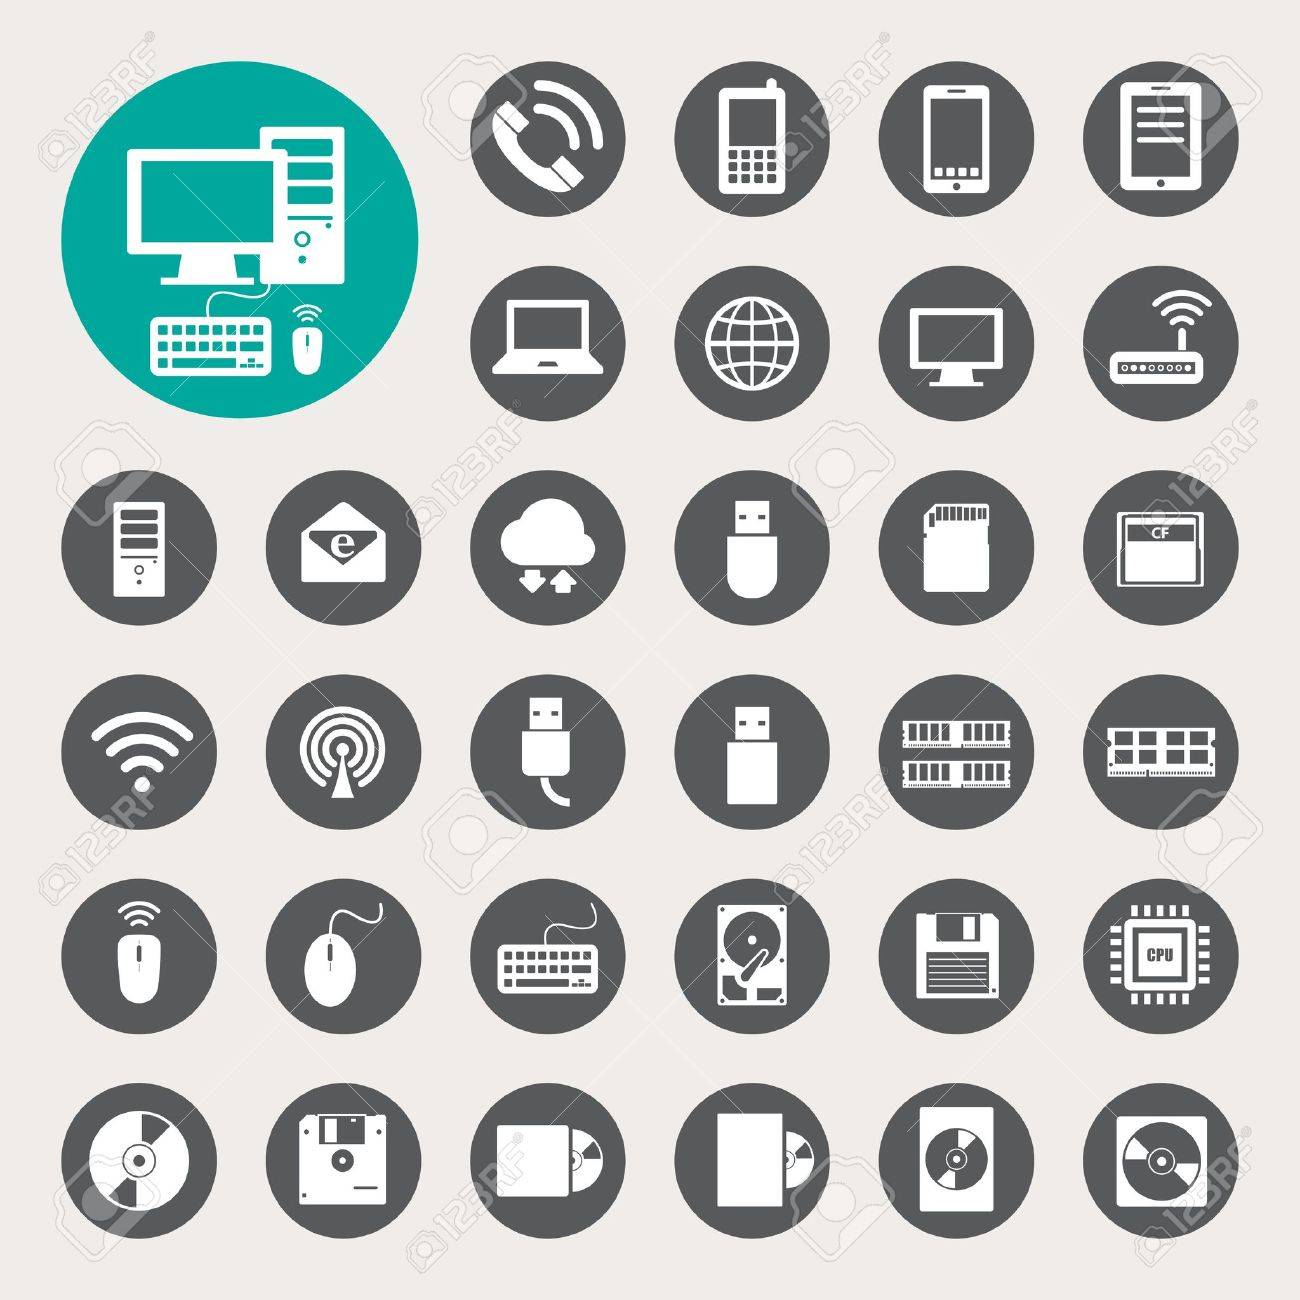 Mobile devices , computer and network connections icons set. Stock Vector - 20151303